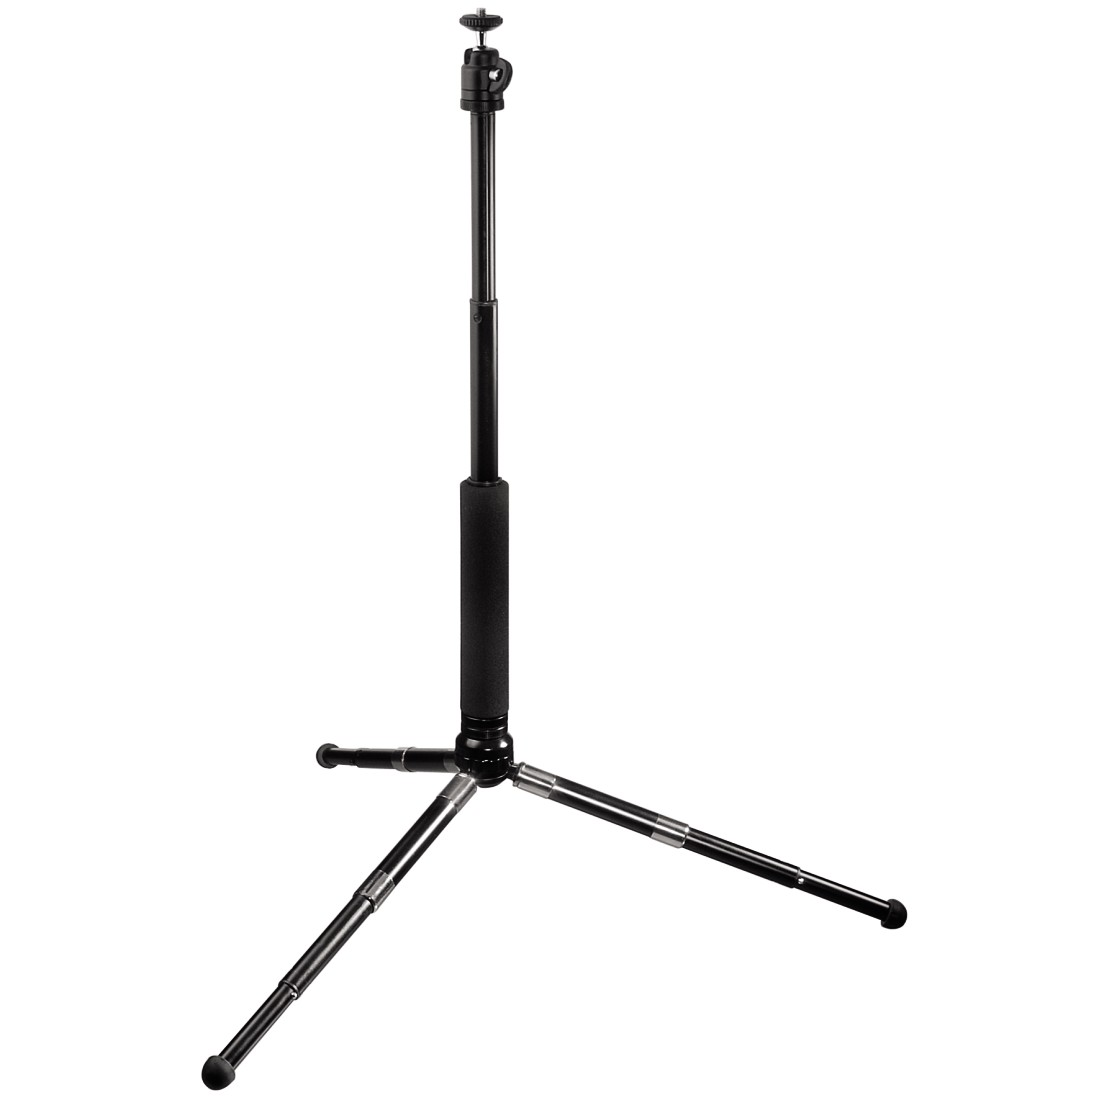 abx3 High-Res Image 3 - Hama, Traveller Multi Table Top Tripod, with Removable Telescopic Tube